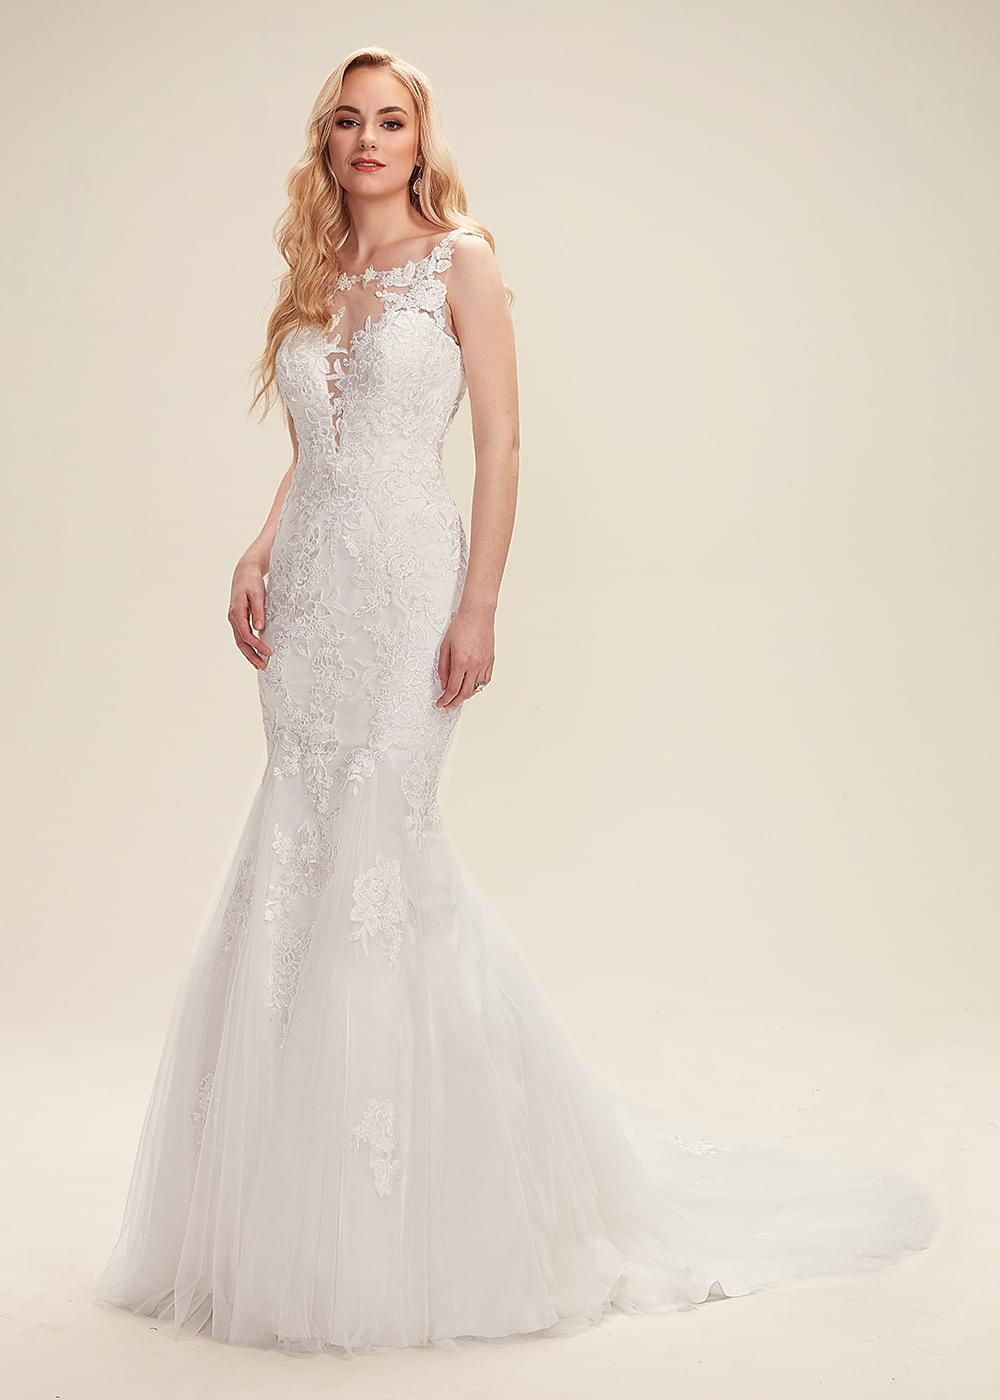 TH-Khloe TH Wedding Dresses By Ashdon